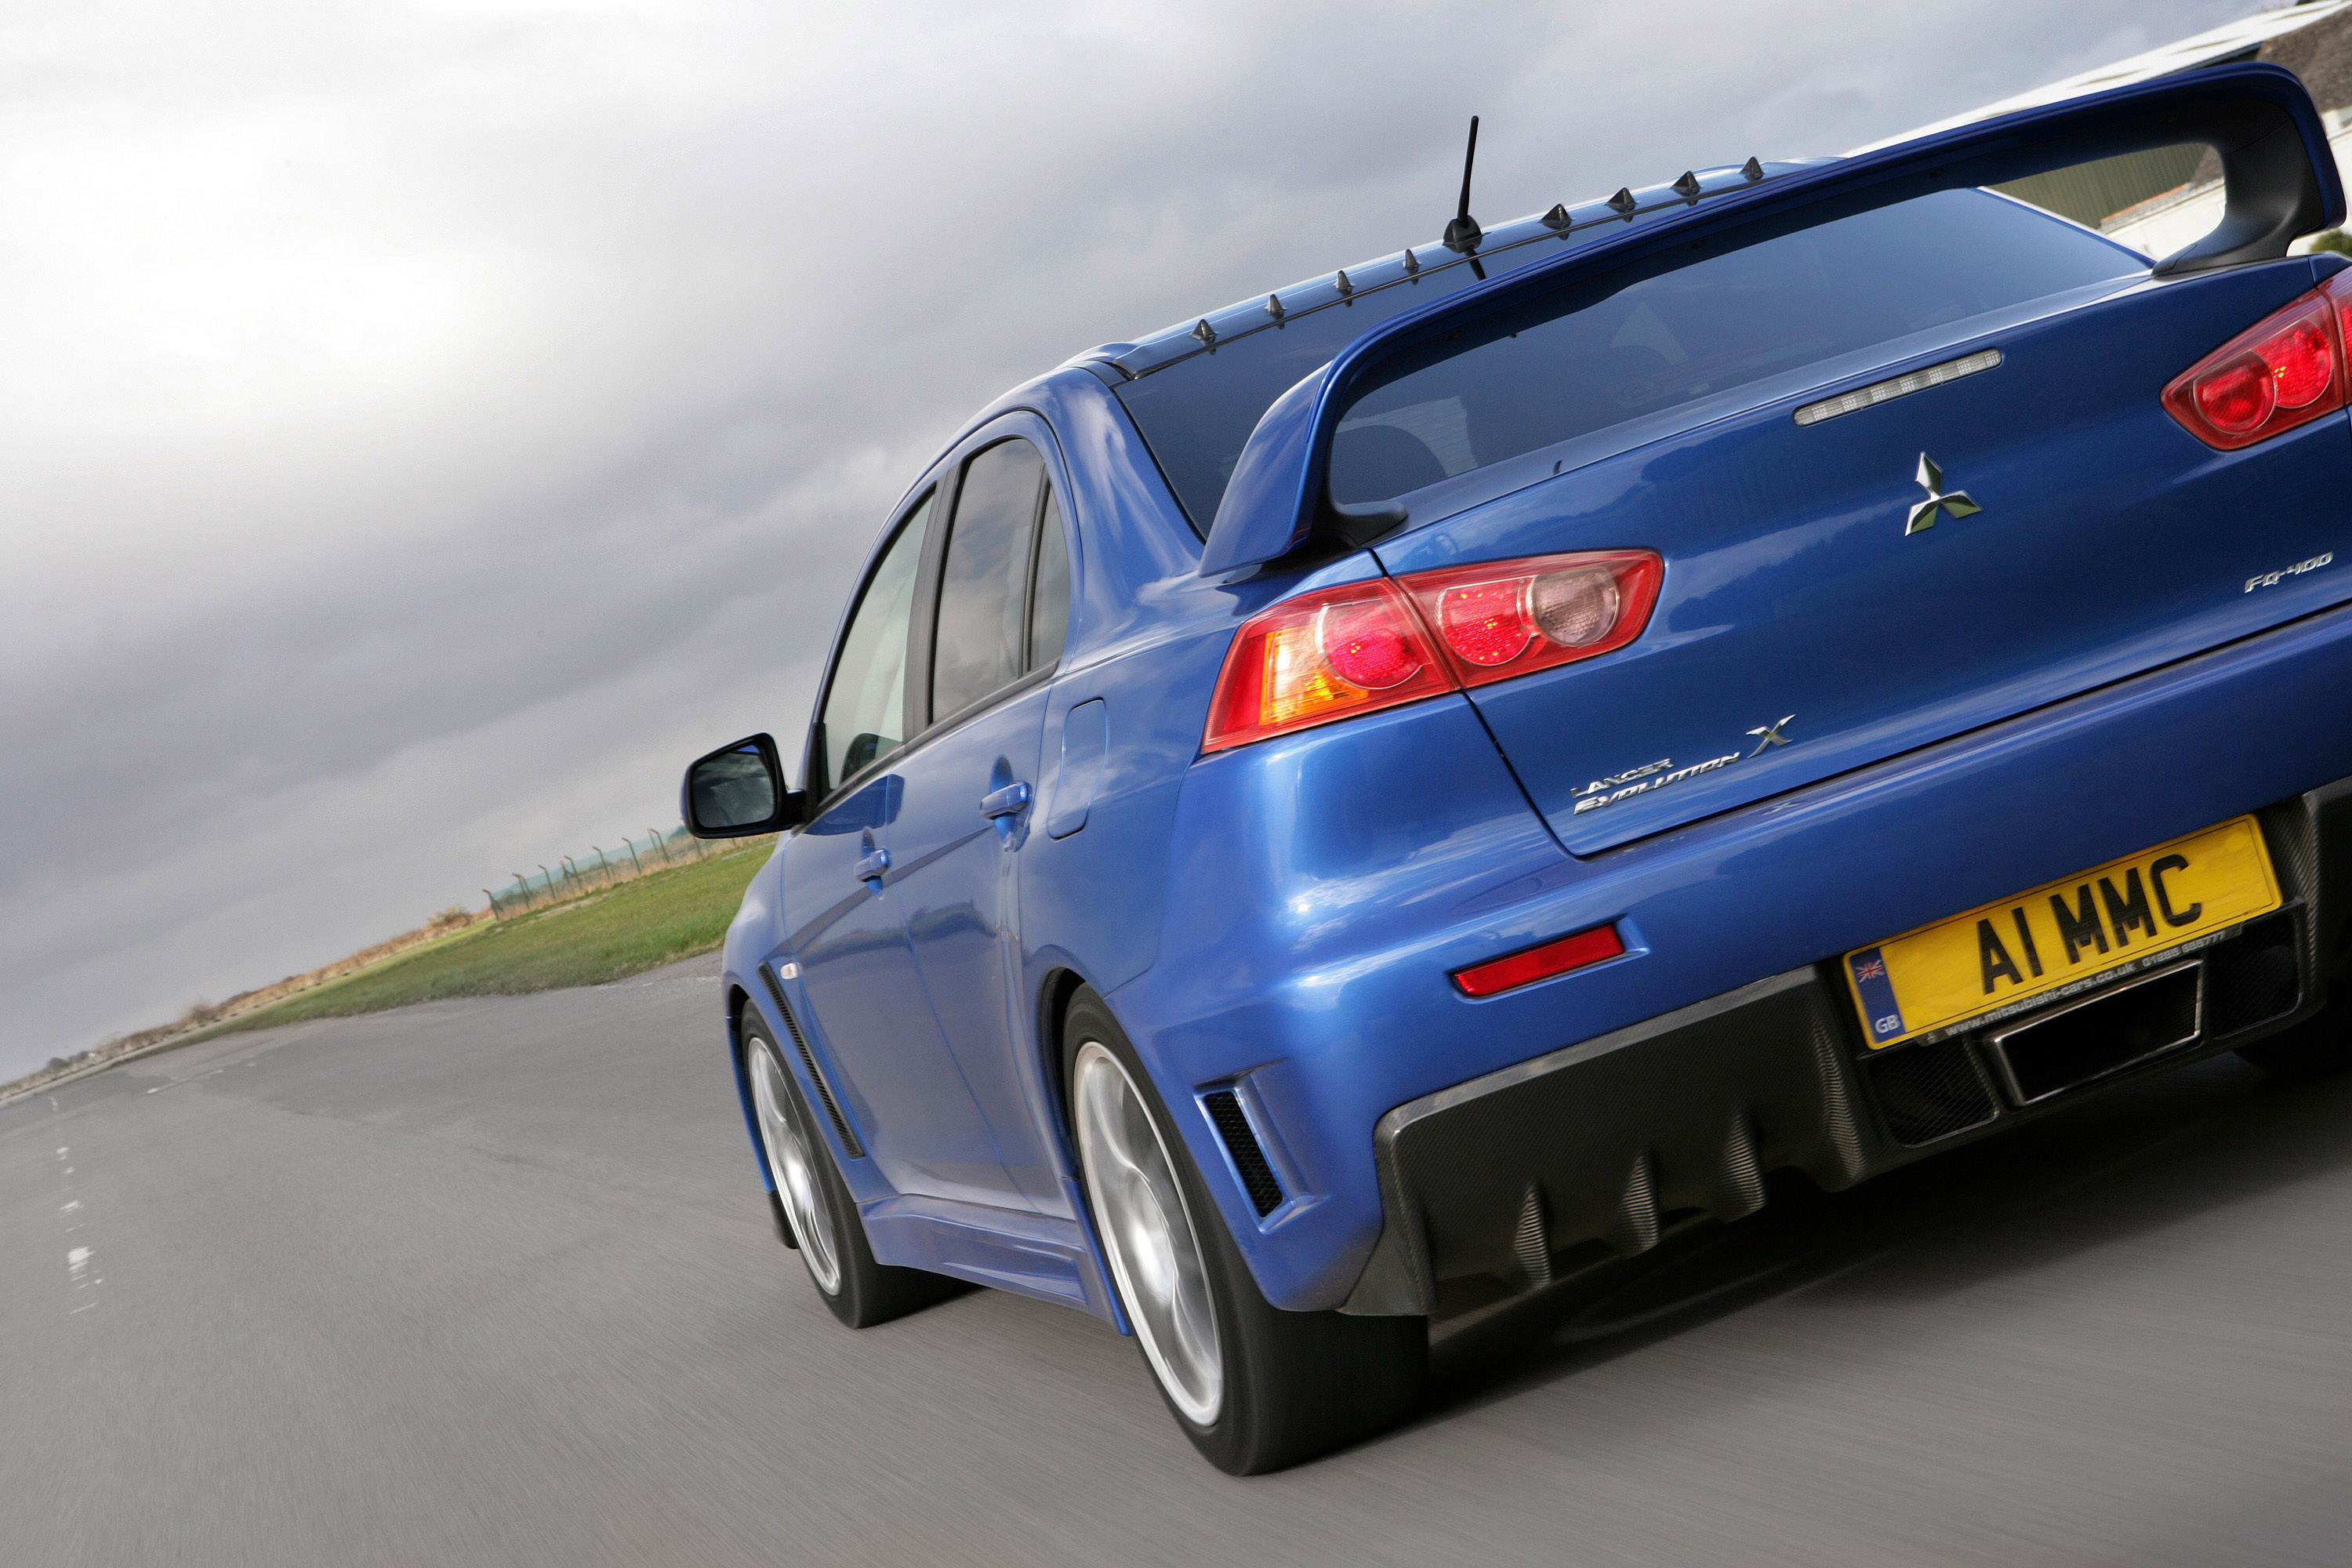 Mitsubishi Lancer Evolution X Fq 400 Picture 21116